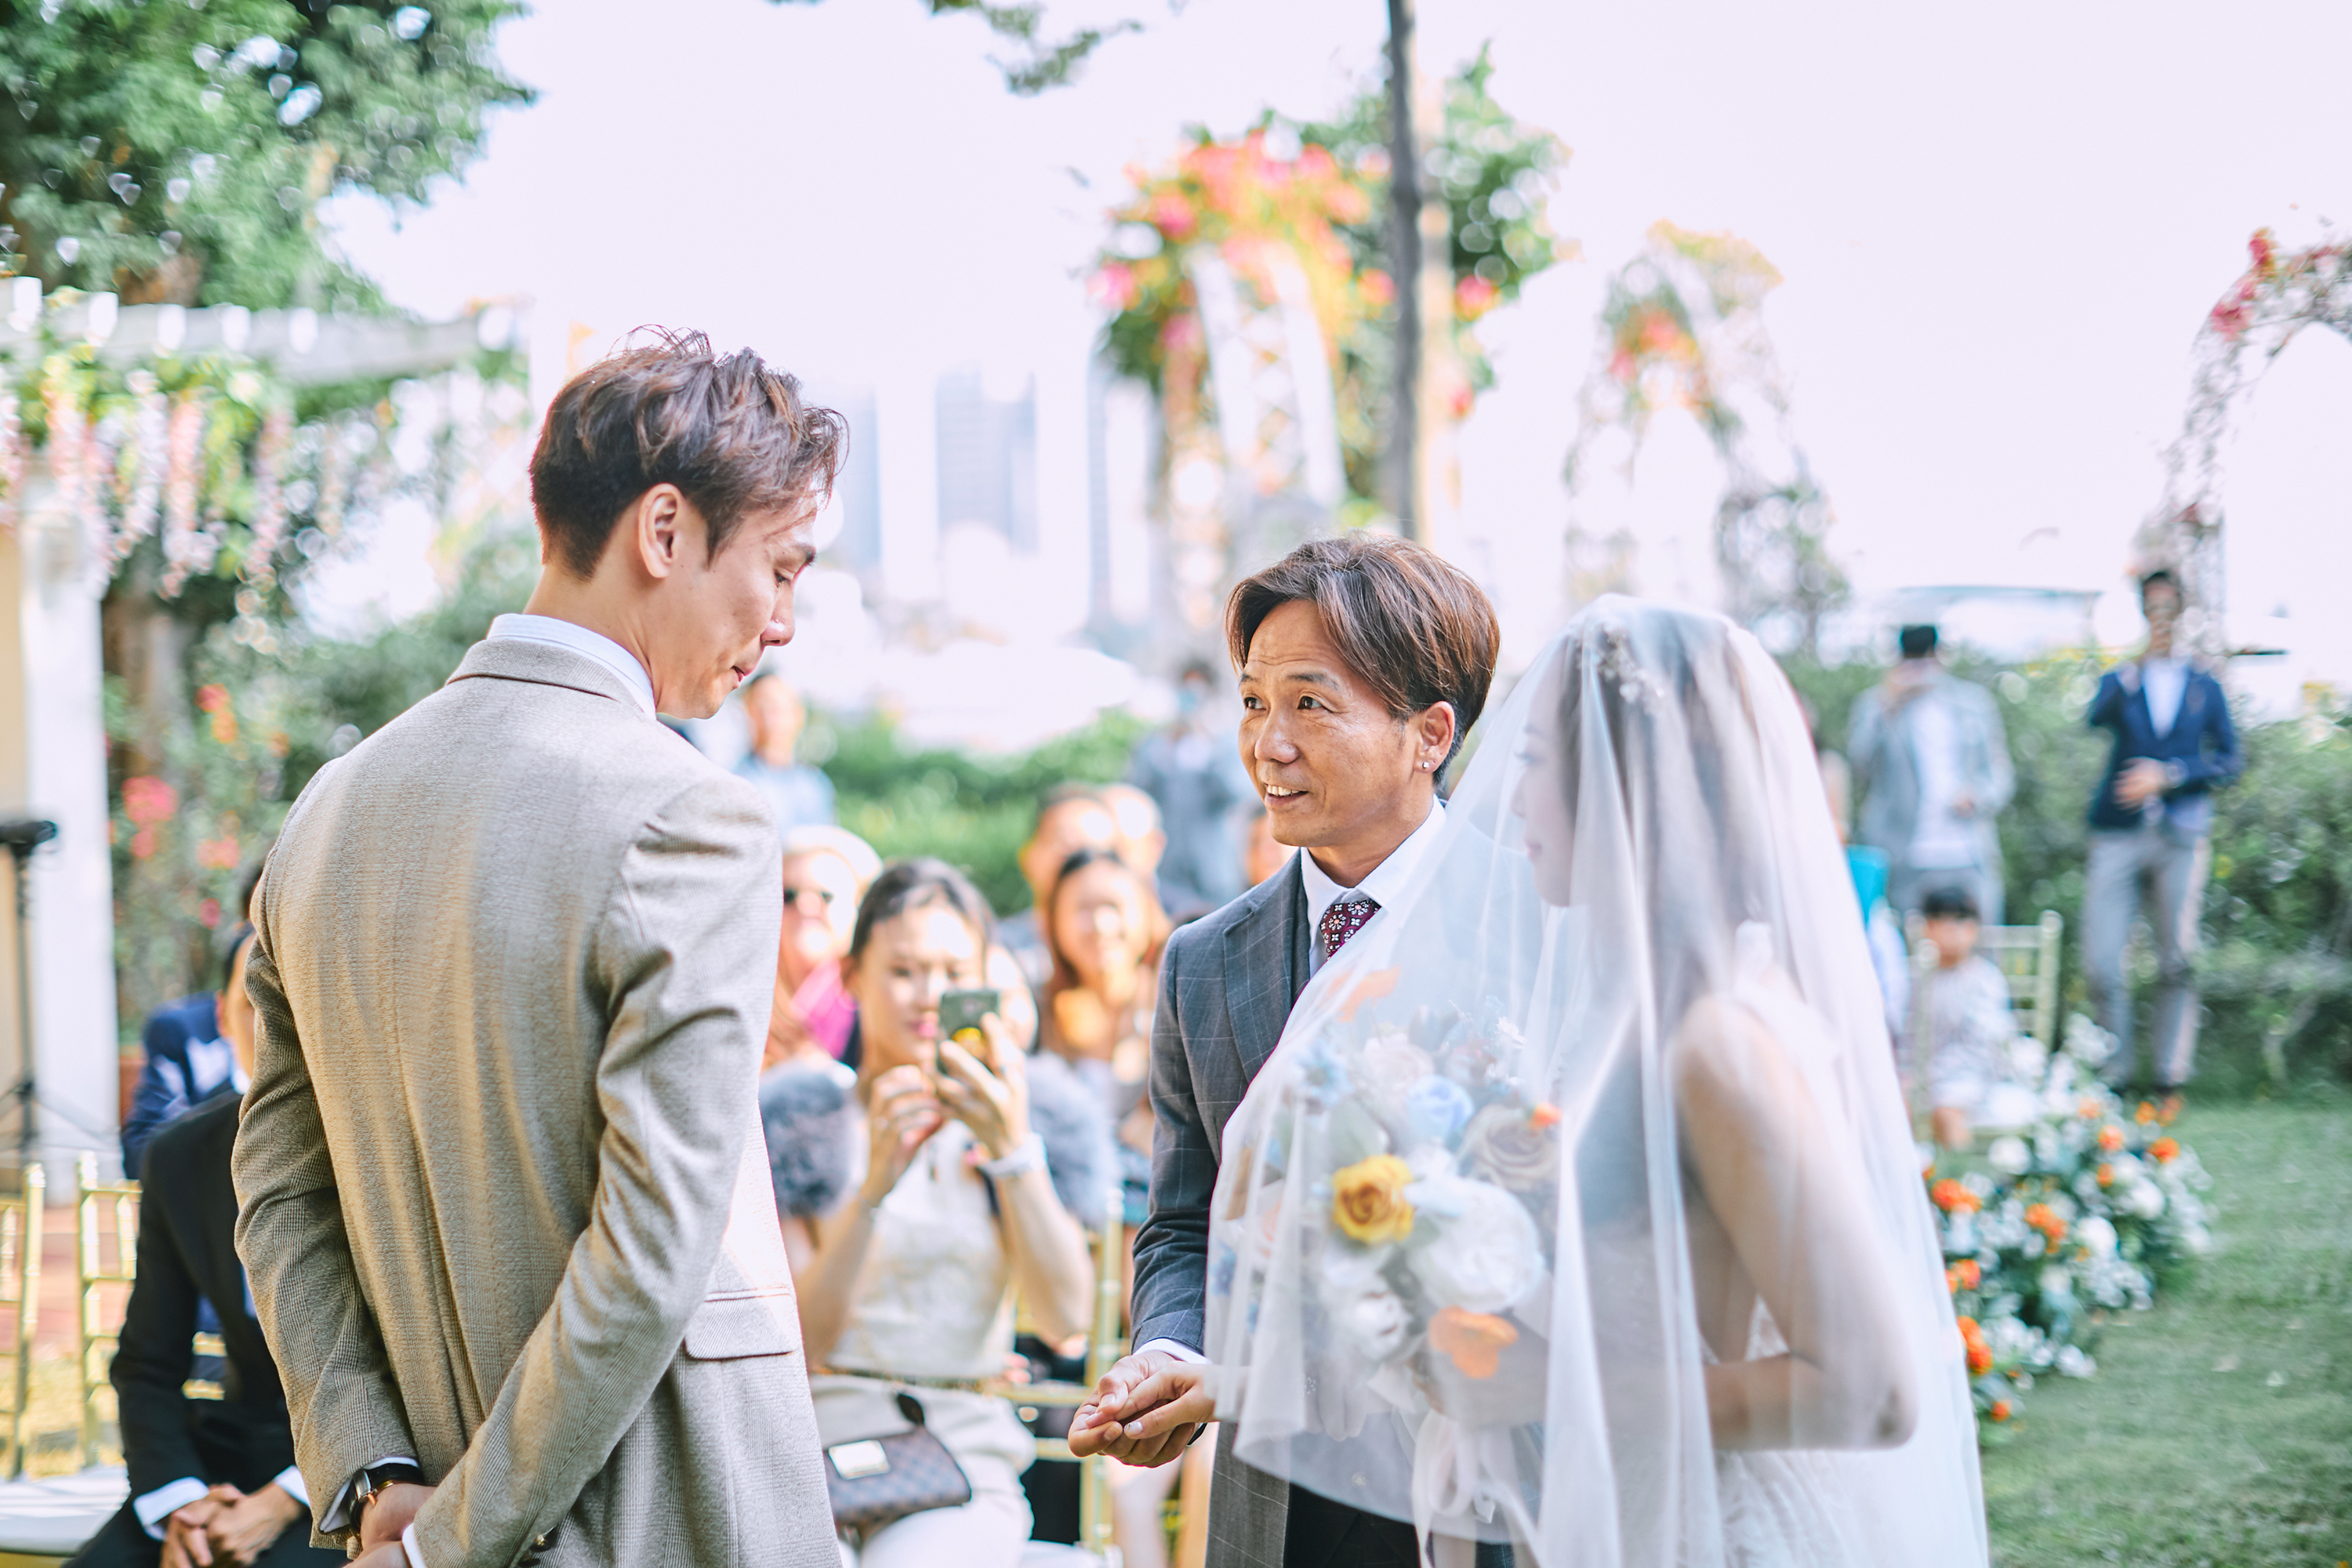 Priscilla and Ryan zOO Hong Kong Wedding Day photography 婚攝 草地證婚 小清新 - Gold Coast Hong Kong 香港黃金海岸酒店